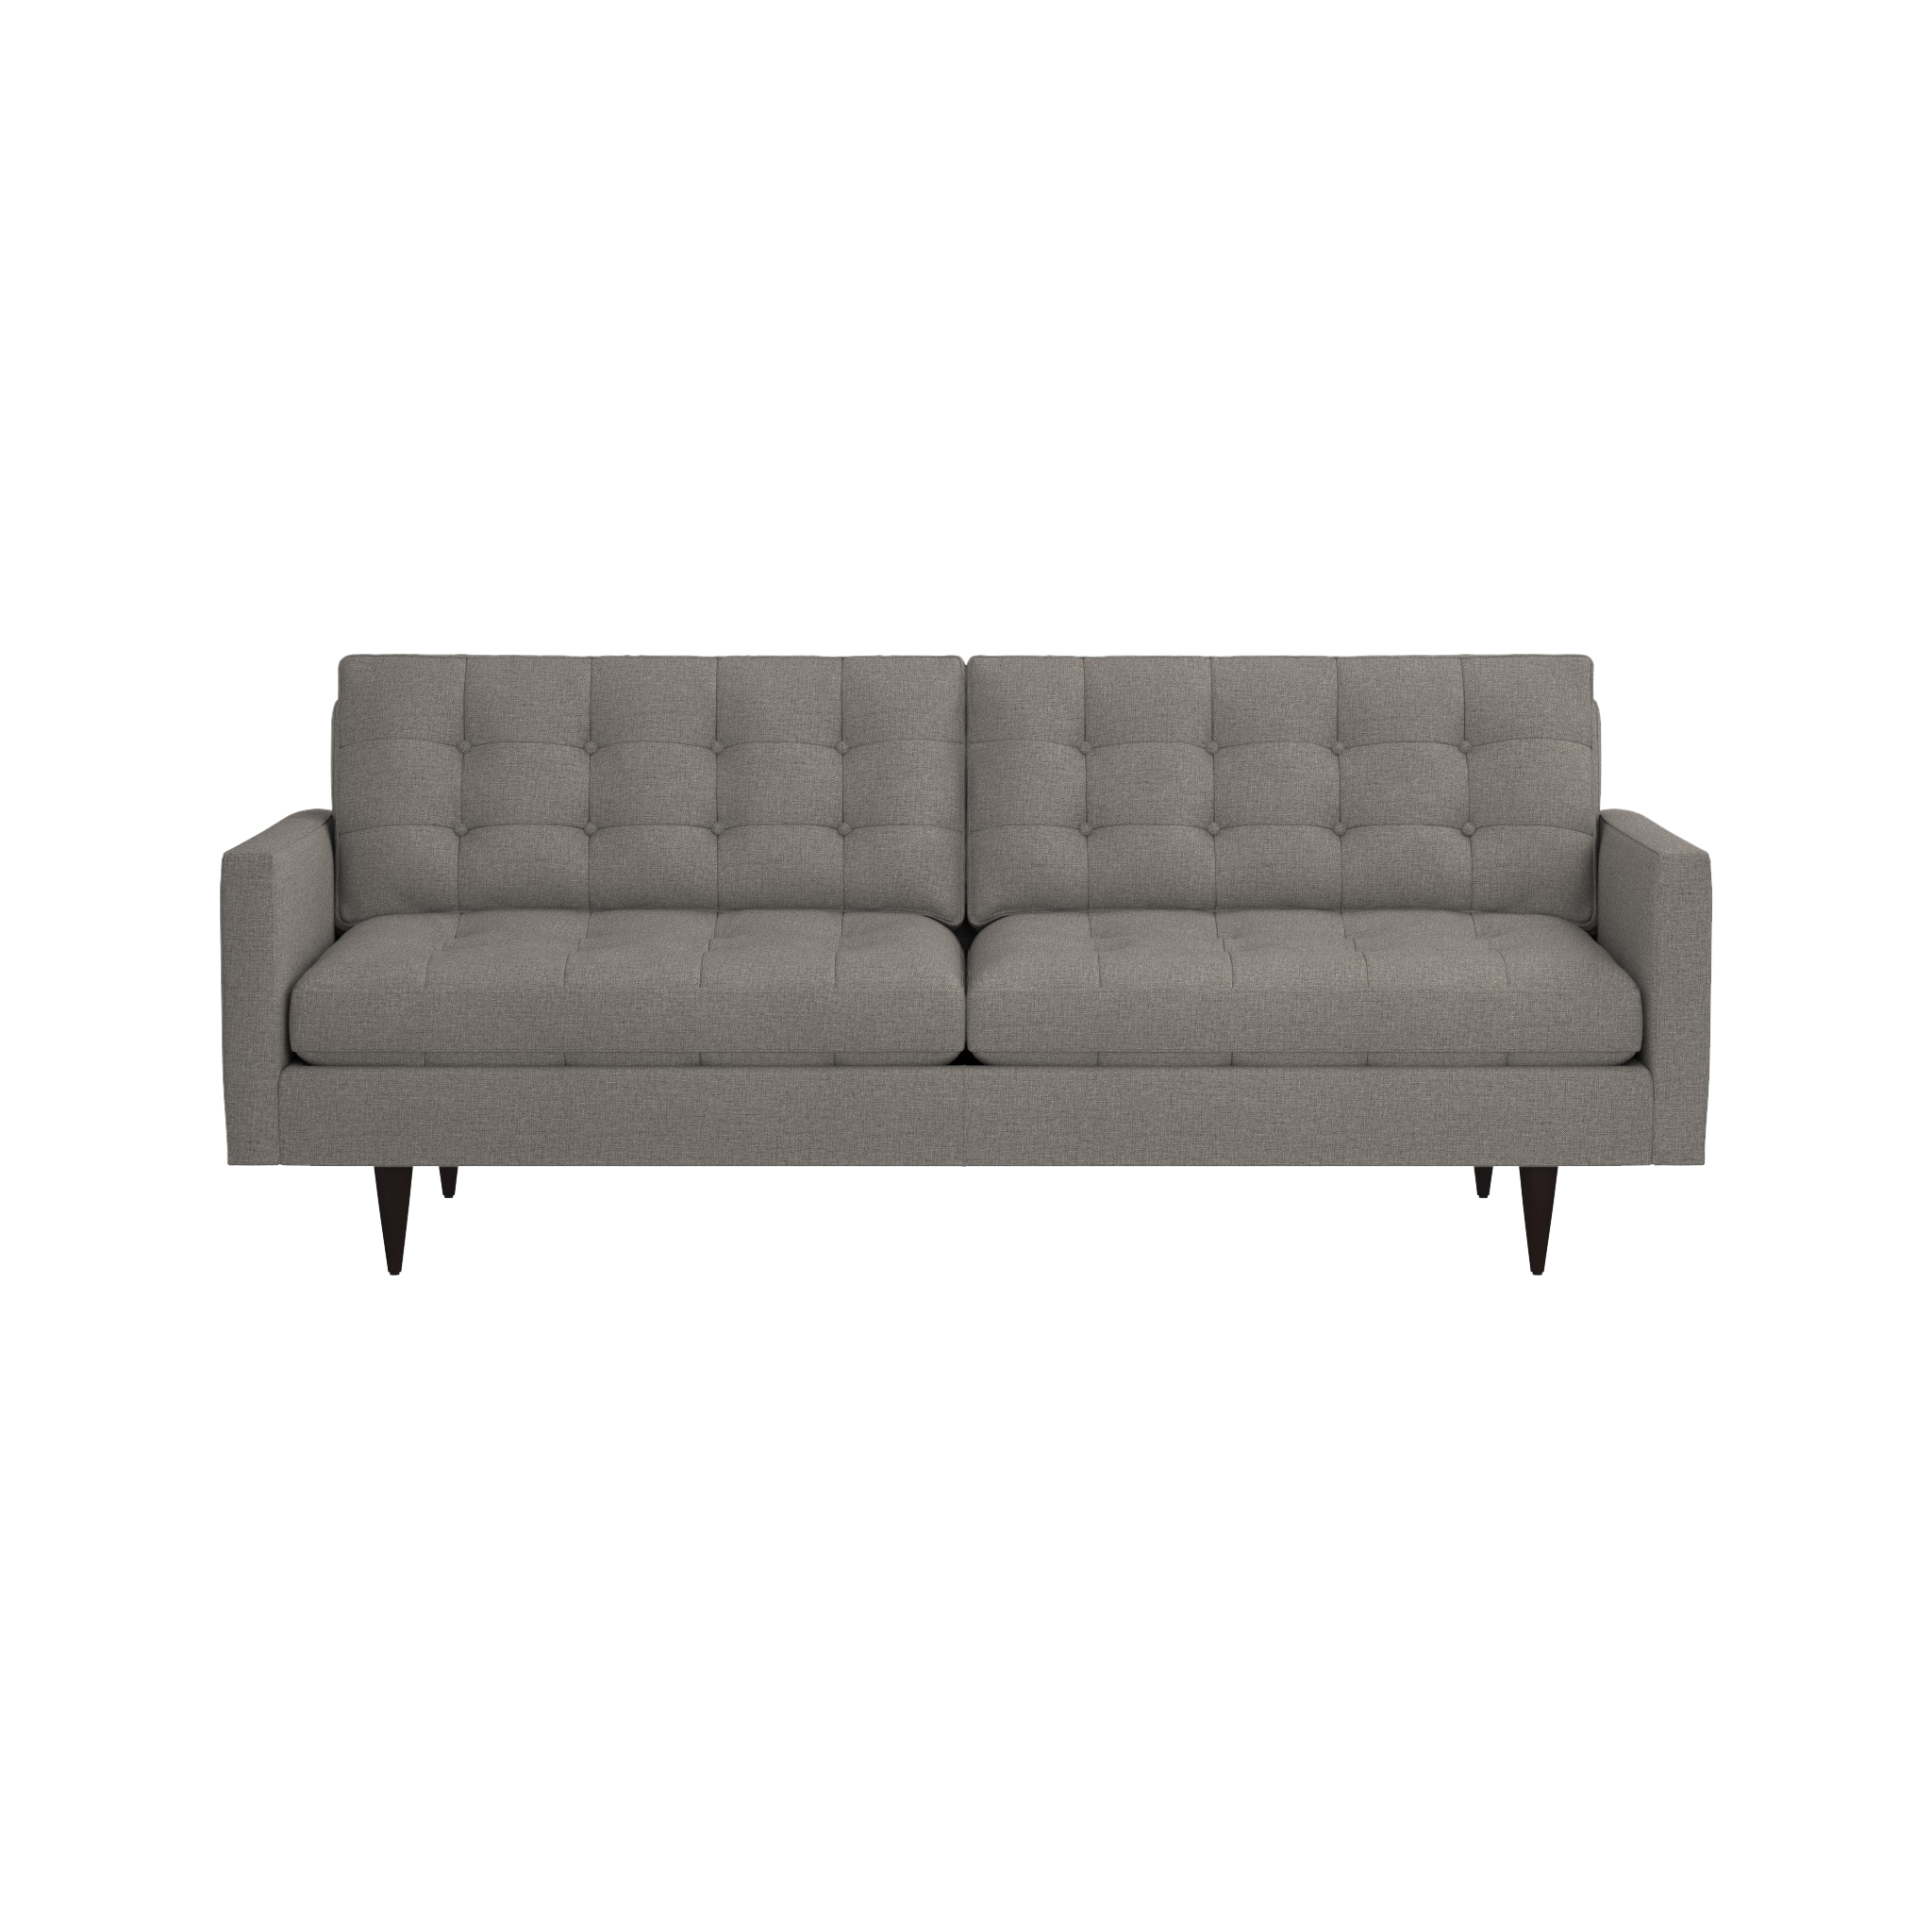 Petrie Mid Century Sofa | Crate And Barrel With Sectional Crate And Barrel (View 16 of 20)